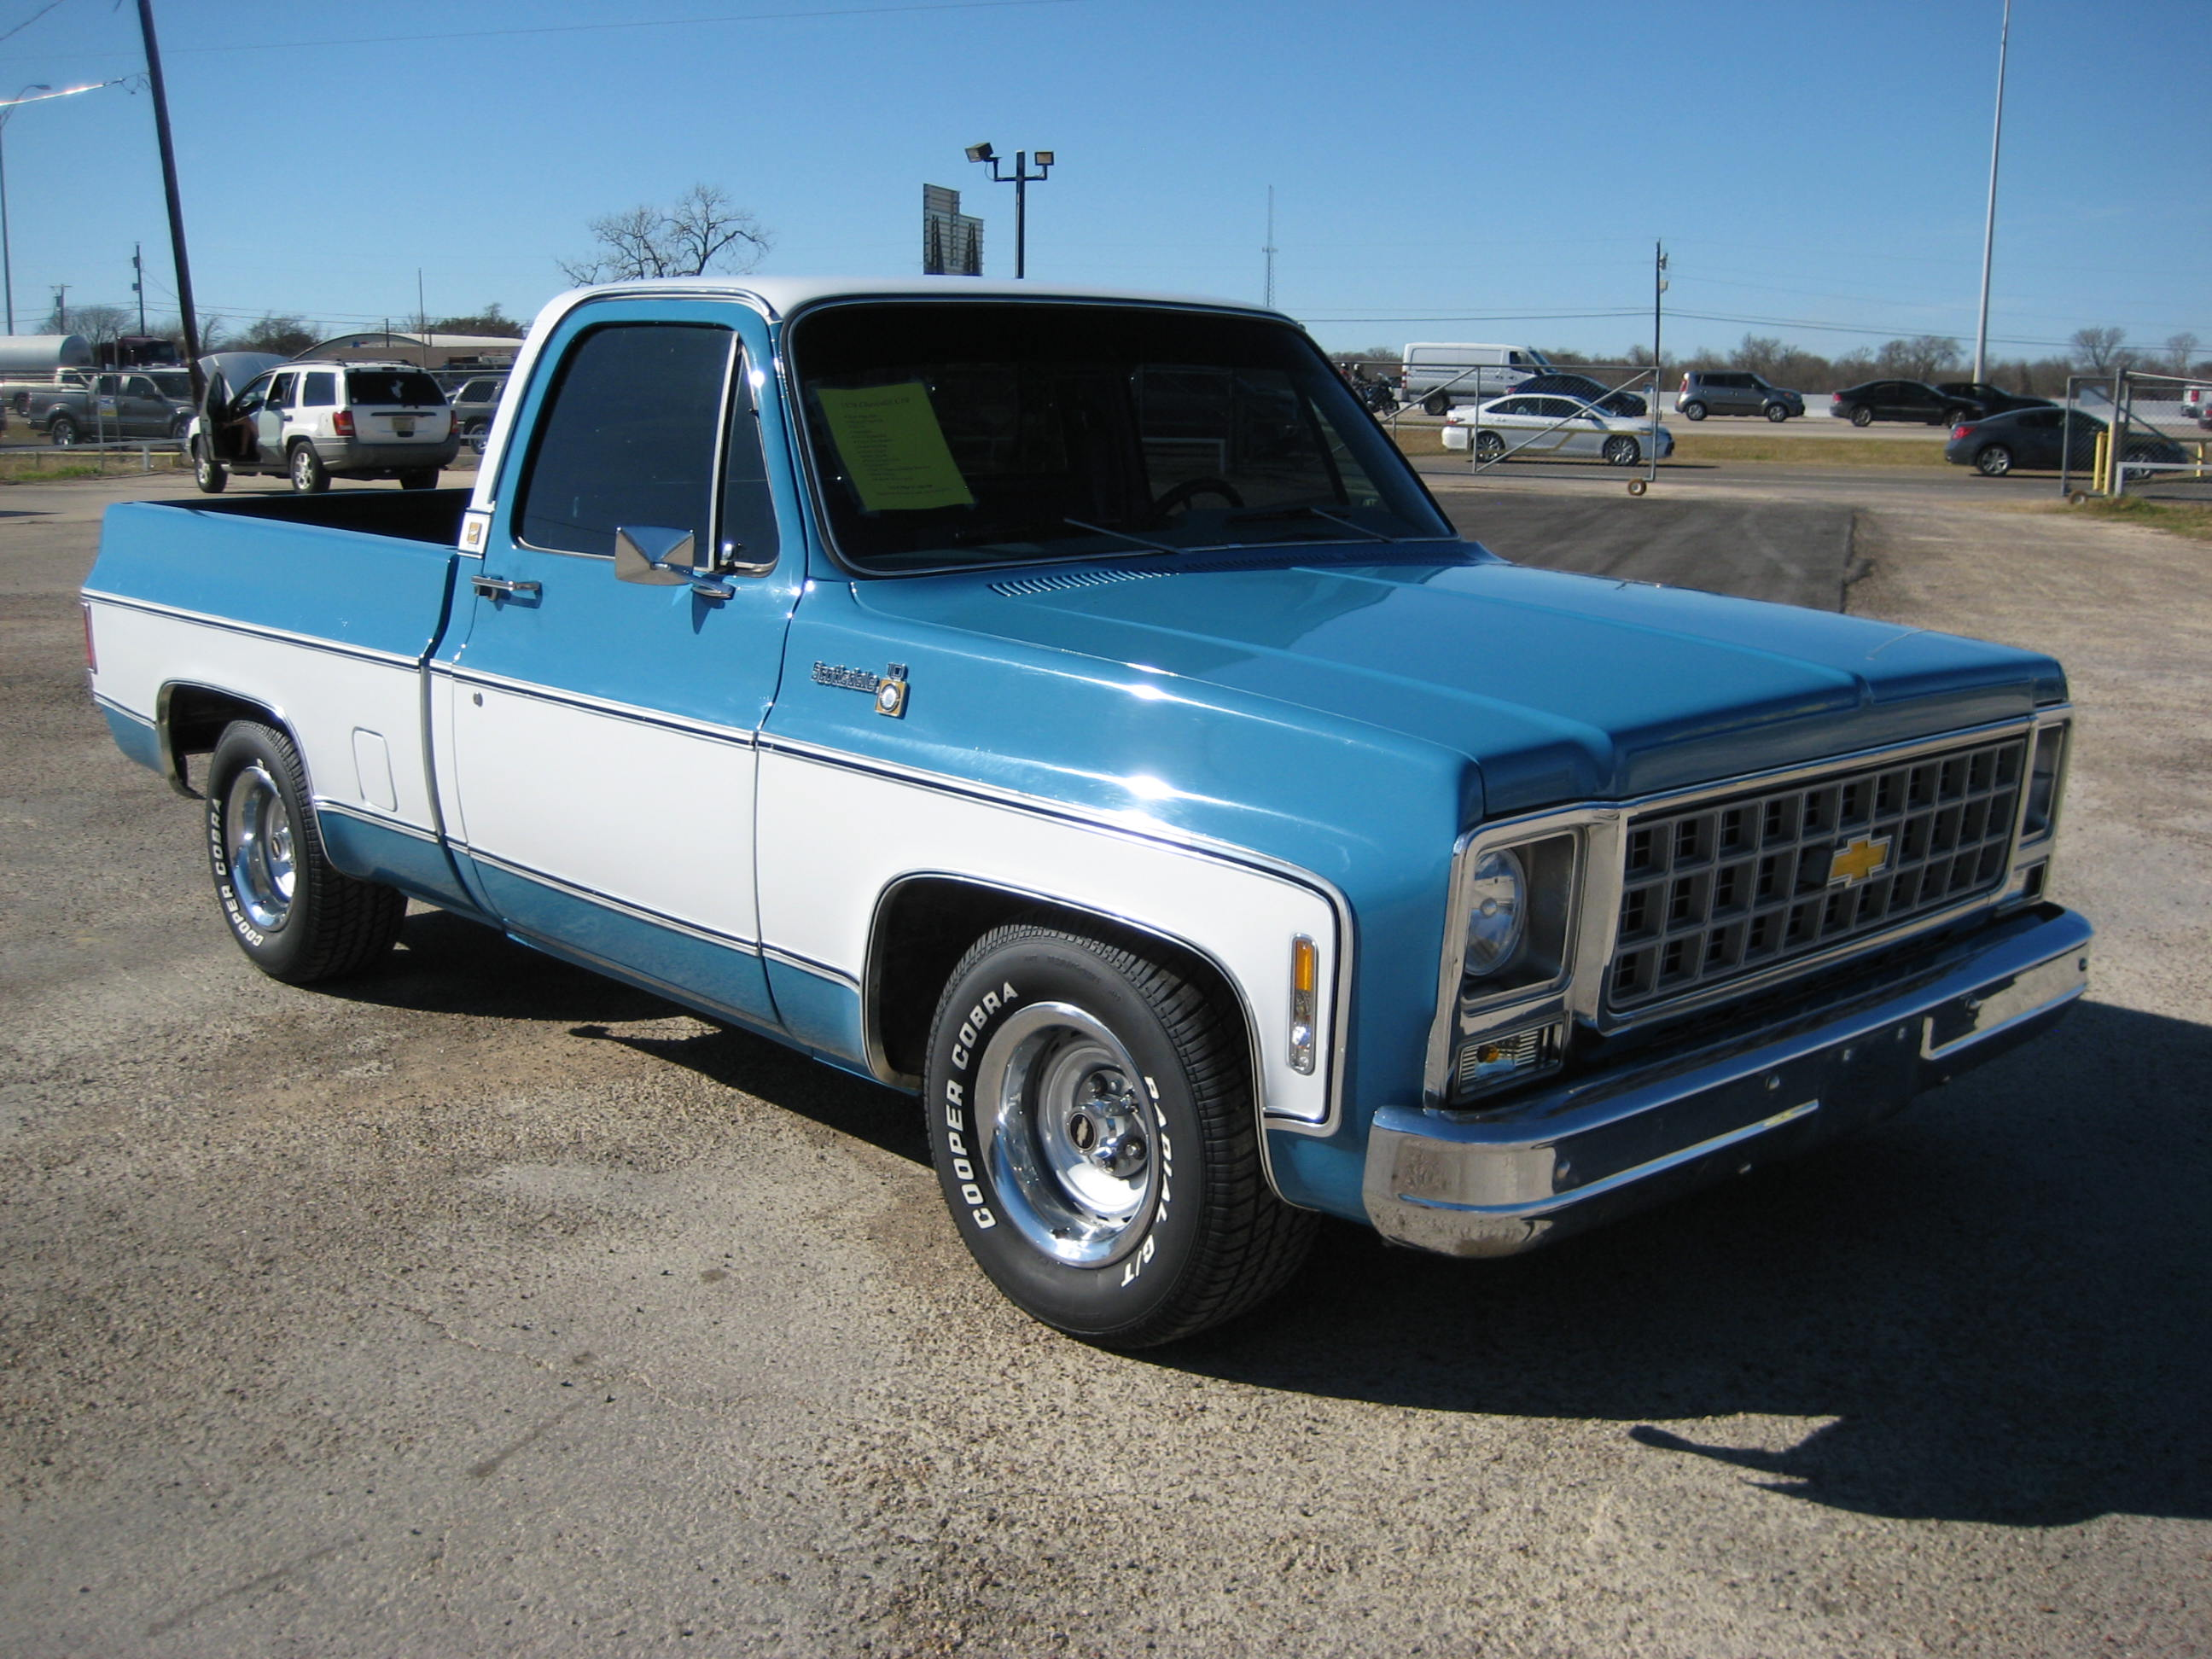 Truck in addition Photos also 262725269254 besides 1950 Ford F1 together with Ebay Motors Car Truck 1987 Chevy. on chevy truck steering column